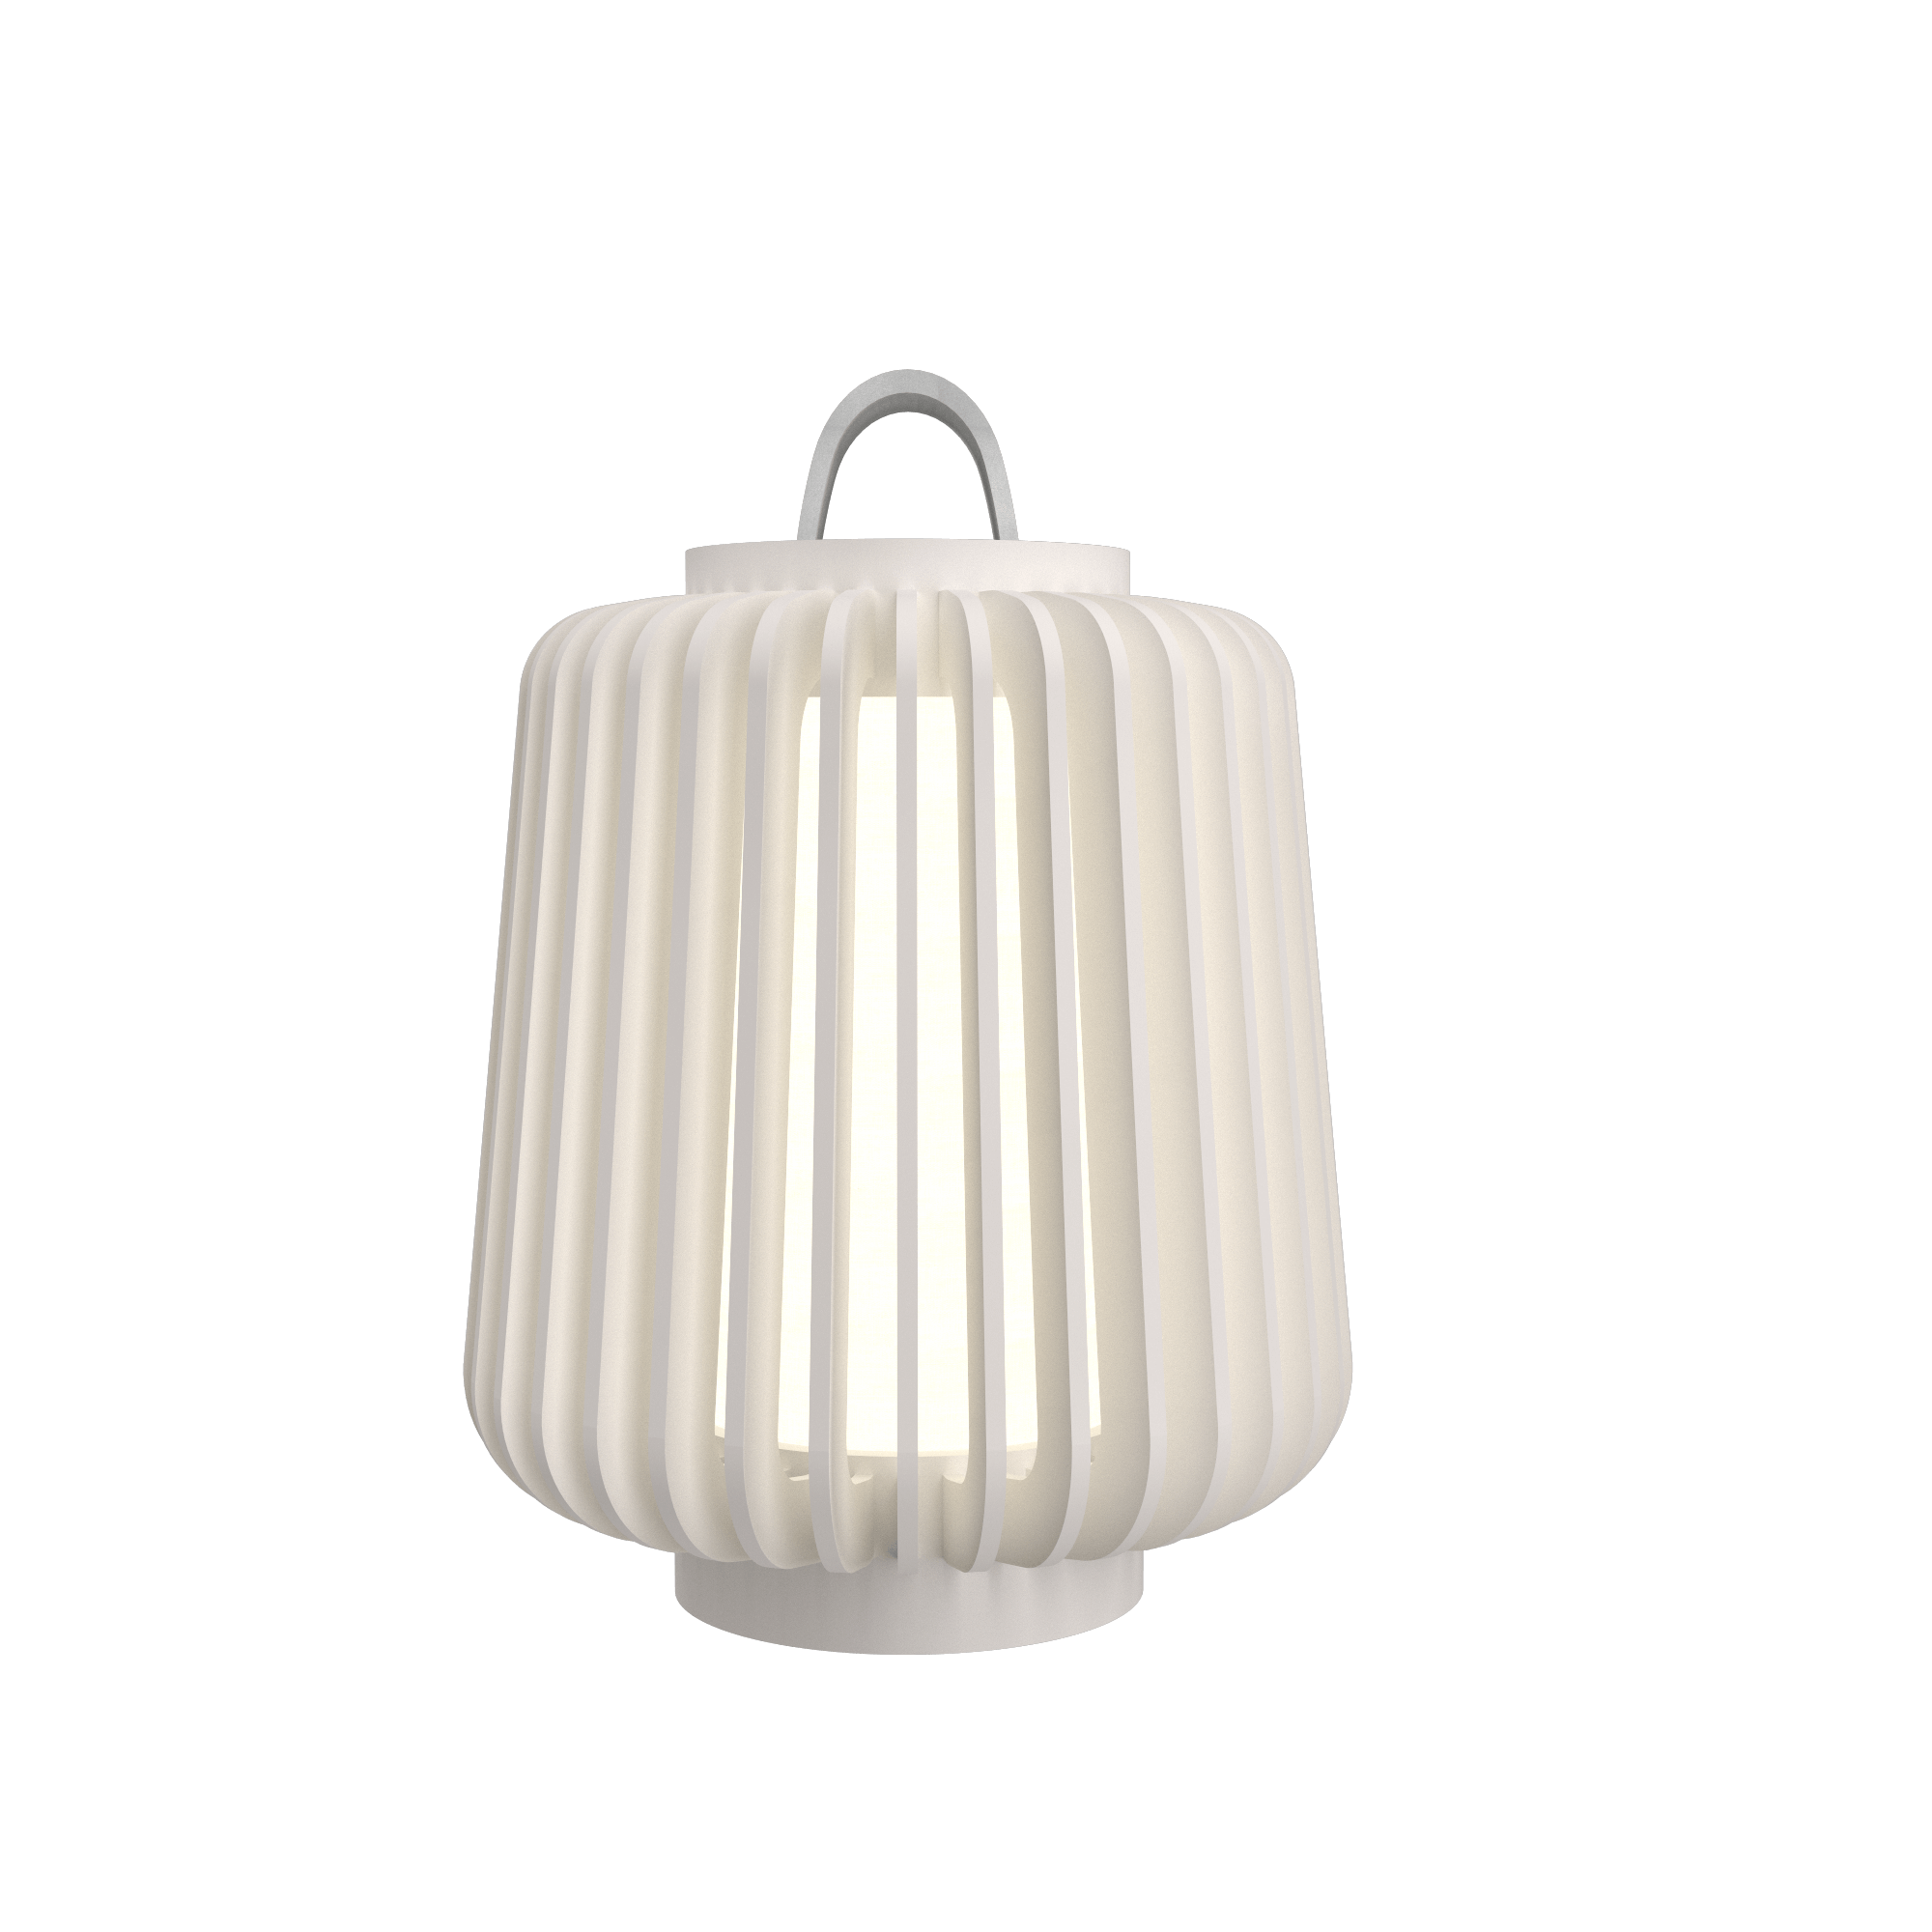 Table Lamp Accord Stecche Di Legno 7059 - Stecche Di Legno Line Accord Lighting | 25. Iredescent White